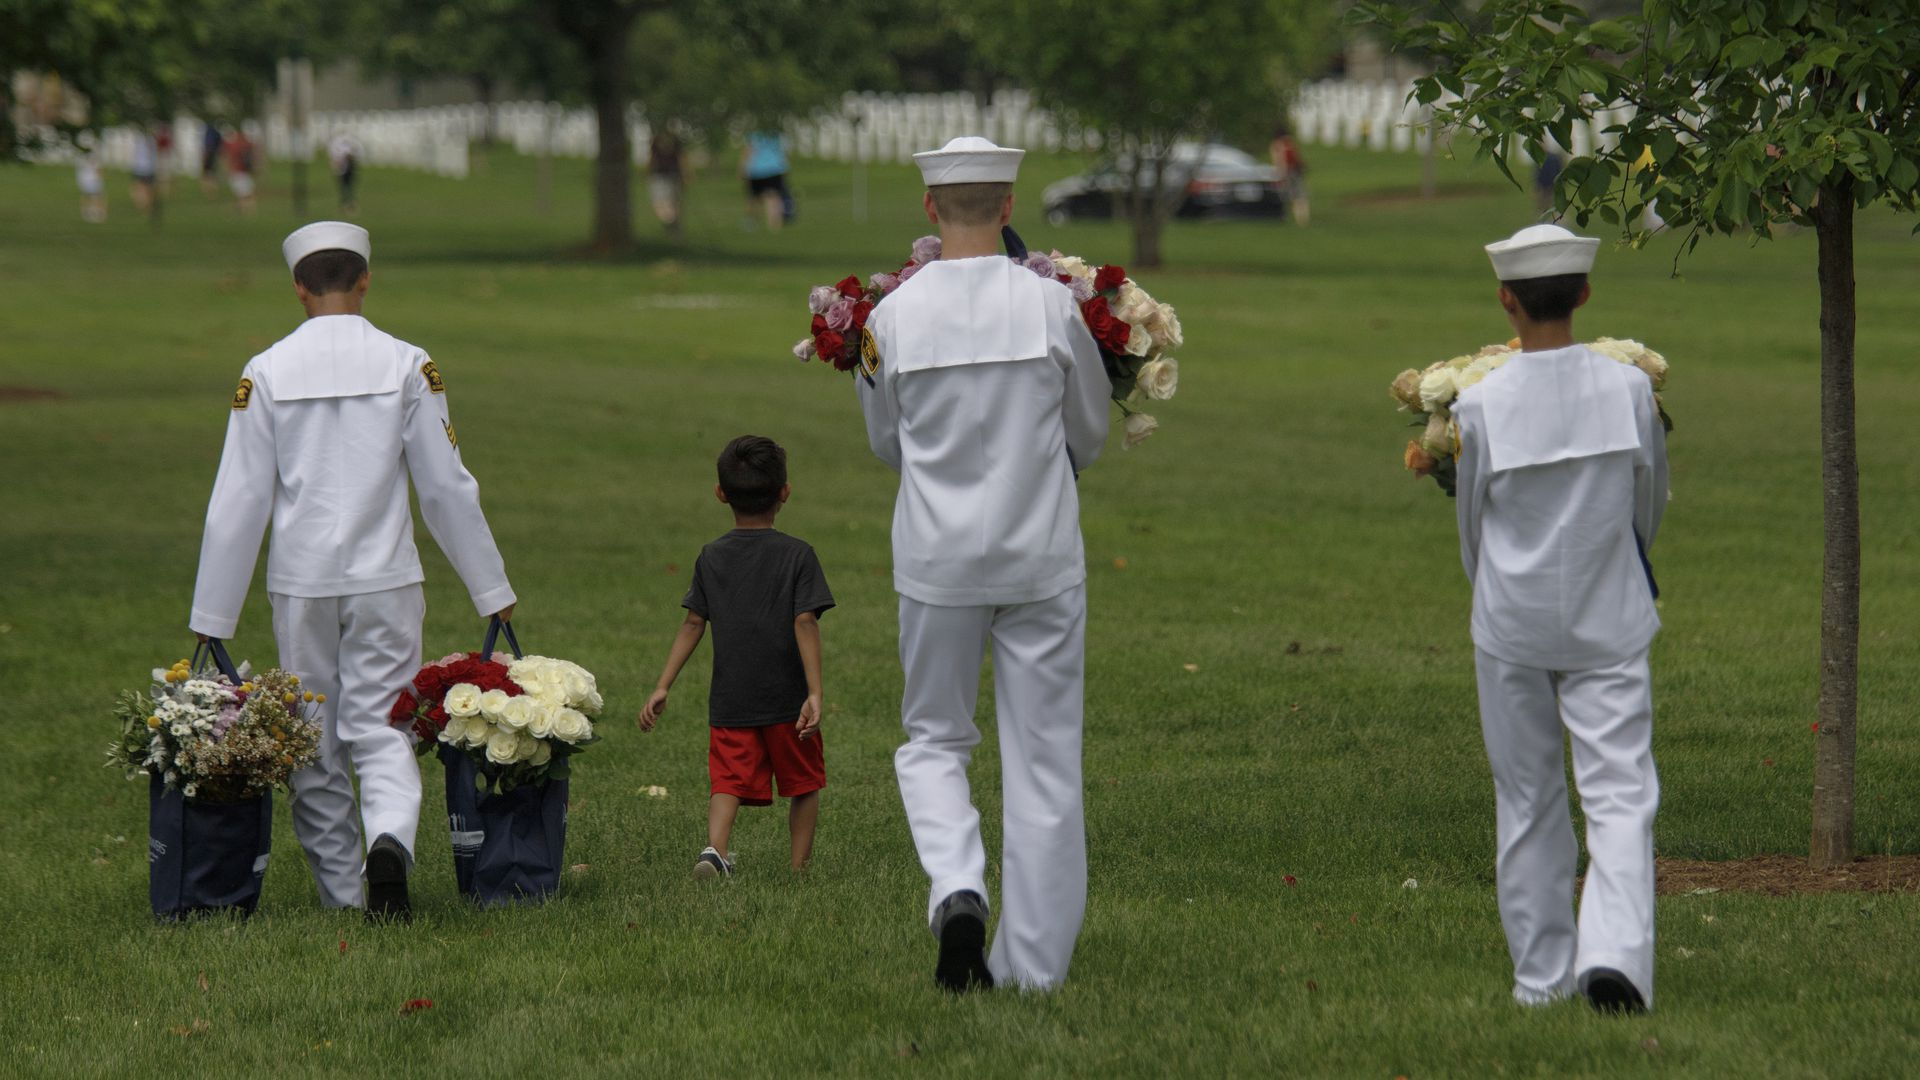 United States Naval Sea Cadets carry flowers to Cemetery Section 33, during a volunteer event ahead of Memorial Day at Arlington National Cemetery